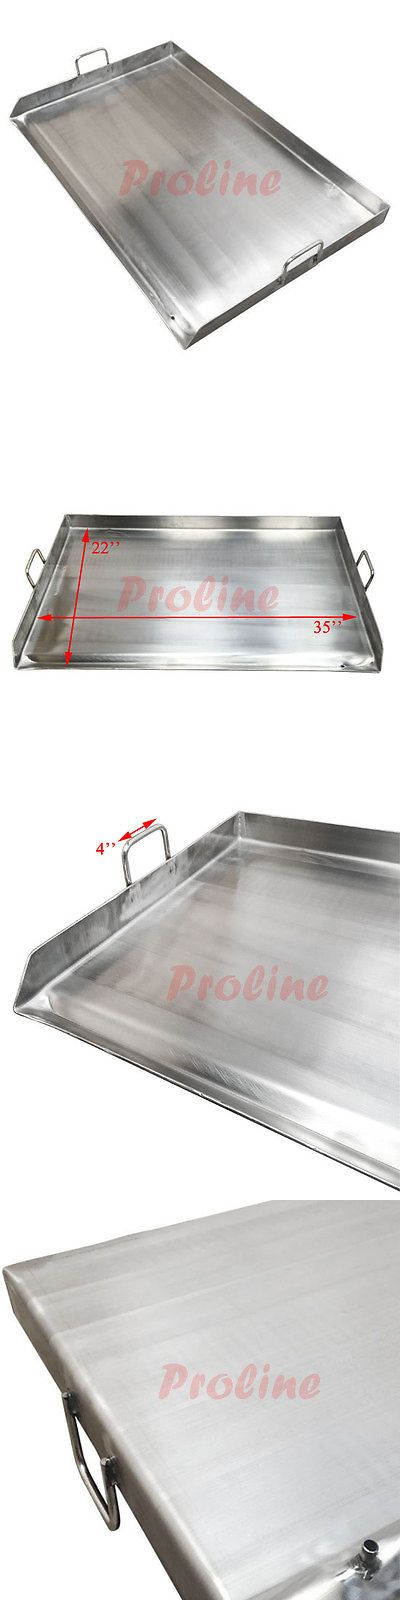 Grills and Griddles 20675: 36 X 22 Stainless Steel Comal Griddle Flat Top Grill For Triple Burner Stove -> BUY IT NOW ONLY: $139.99 on eBay!